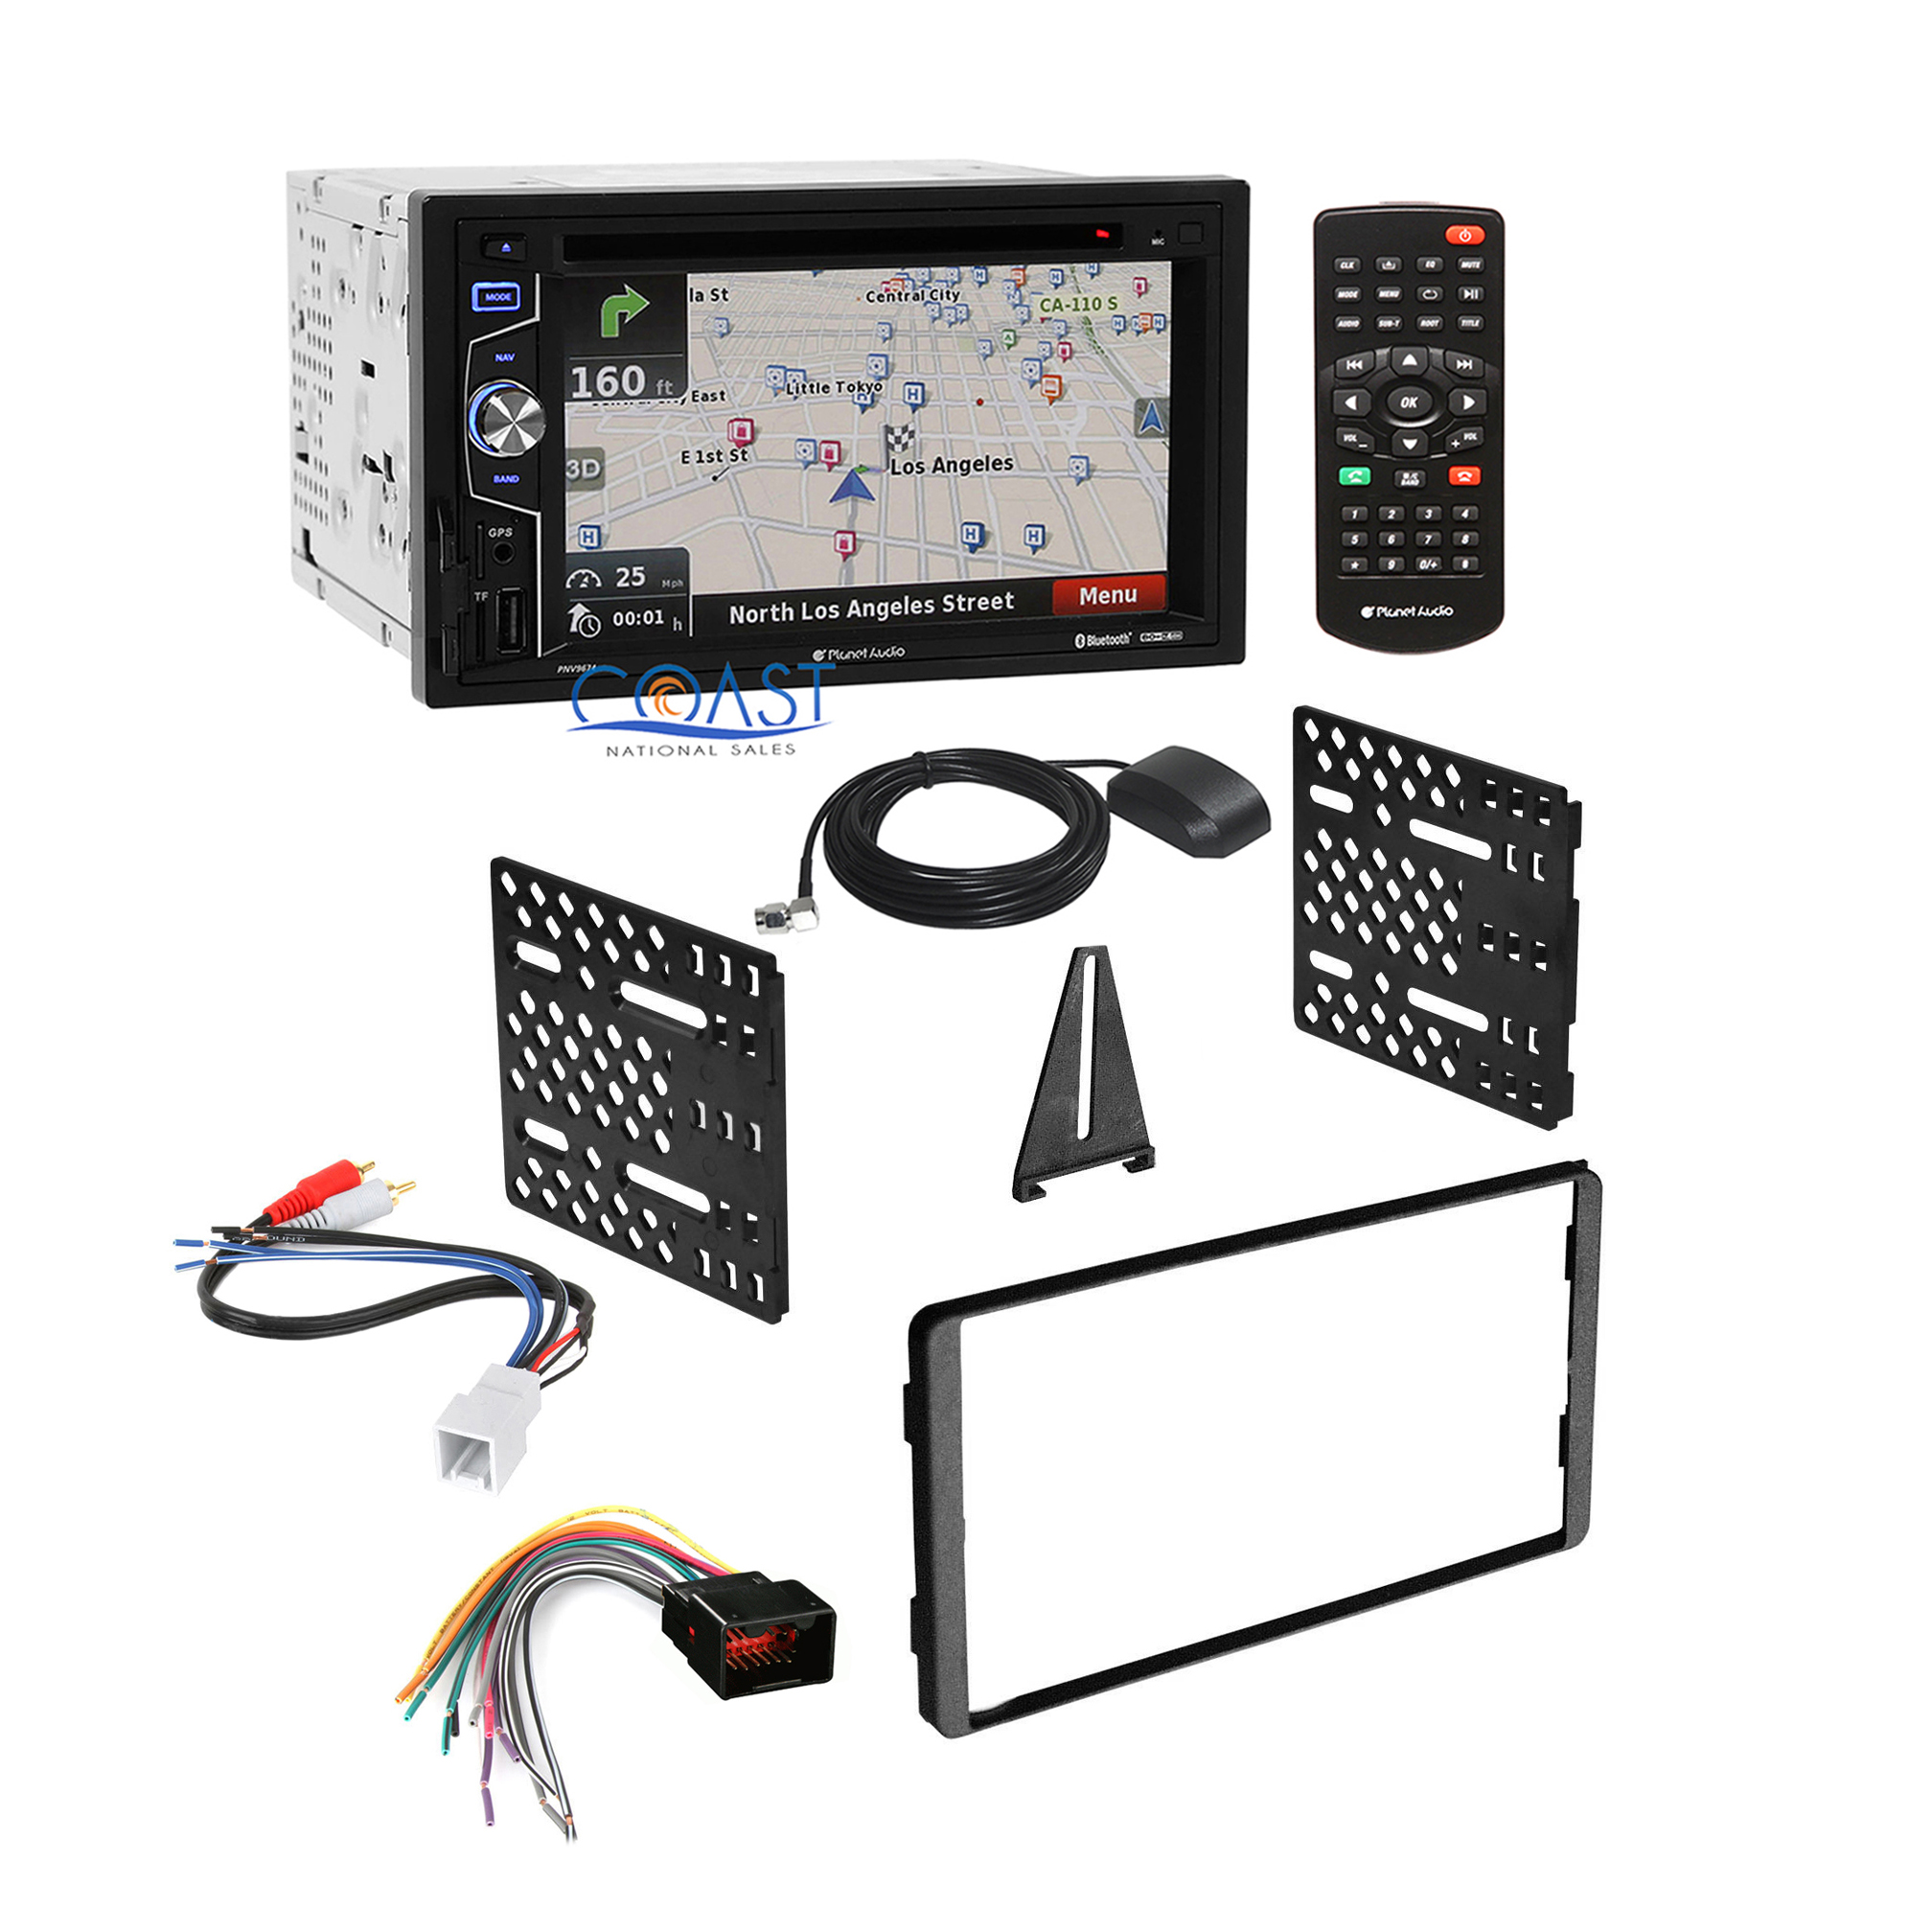 planet audio wiring diagram planet audio wiring harness planet audio car radio stereo + dash kit harness for 98-up ...